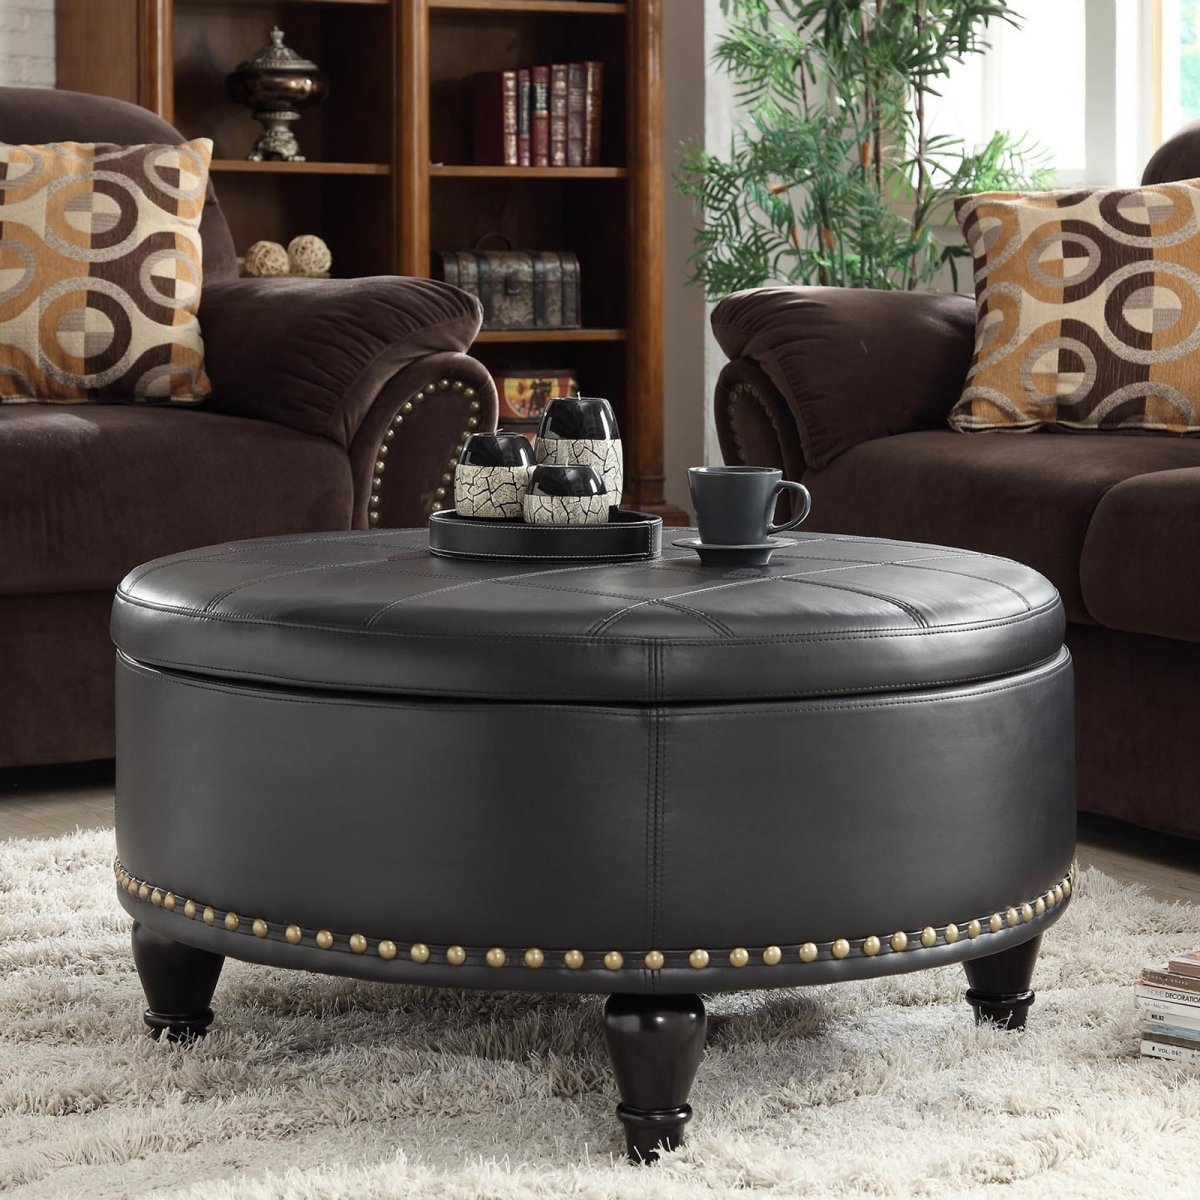 Unique and creative tufted leather ottoman coffee table homesfeed Round leather ottoman coffee table